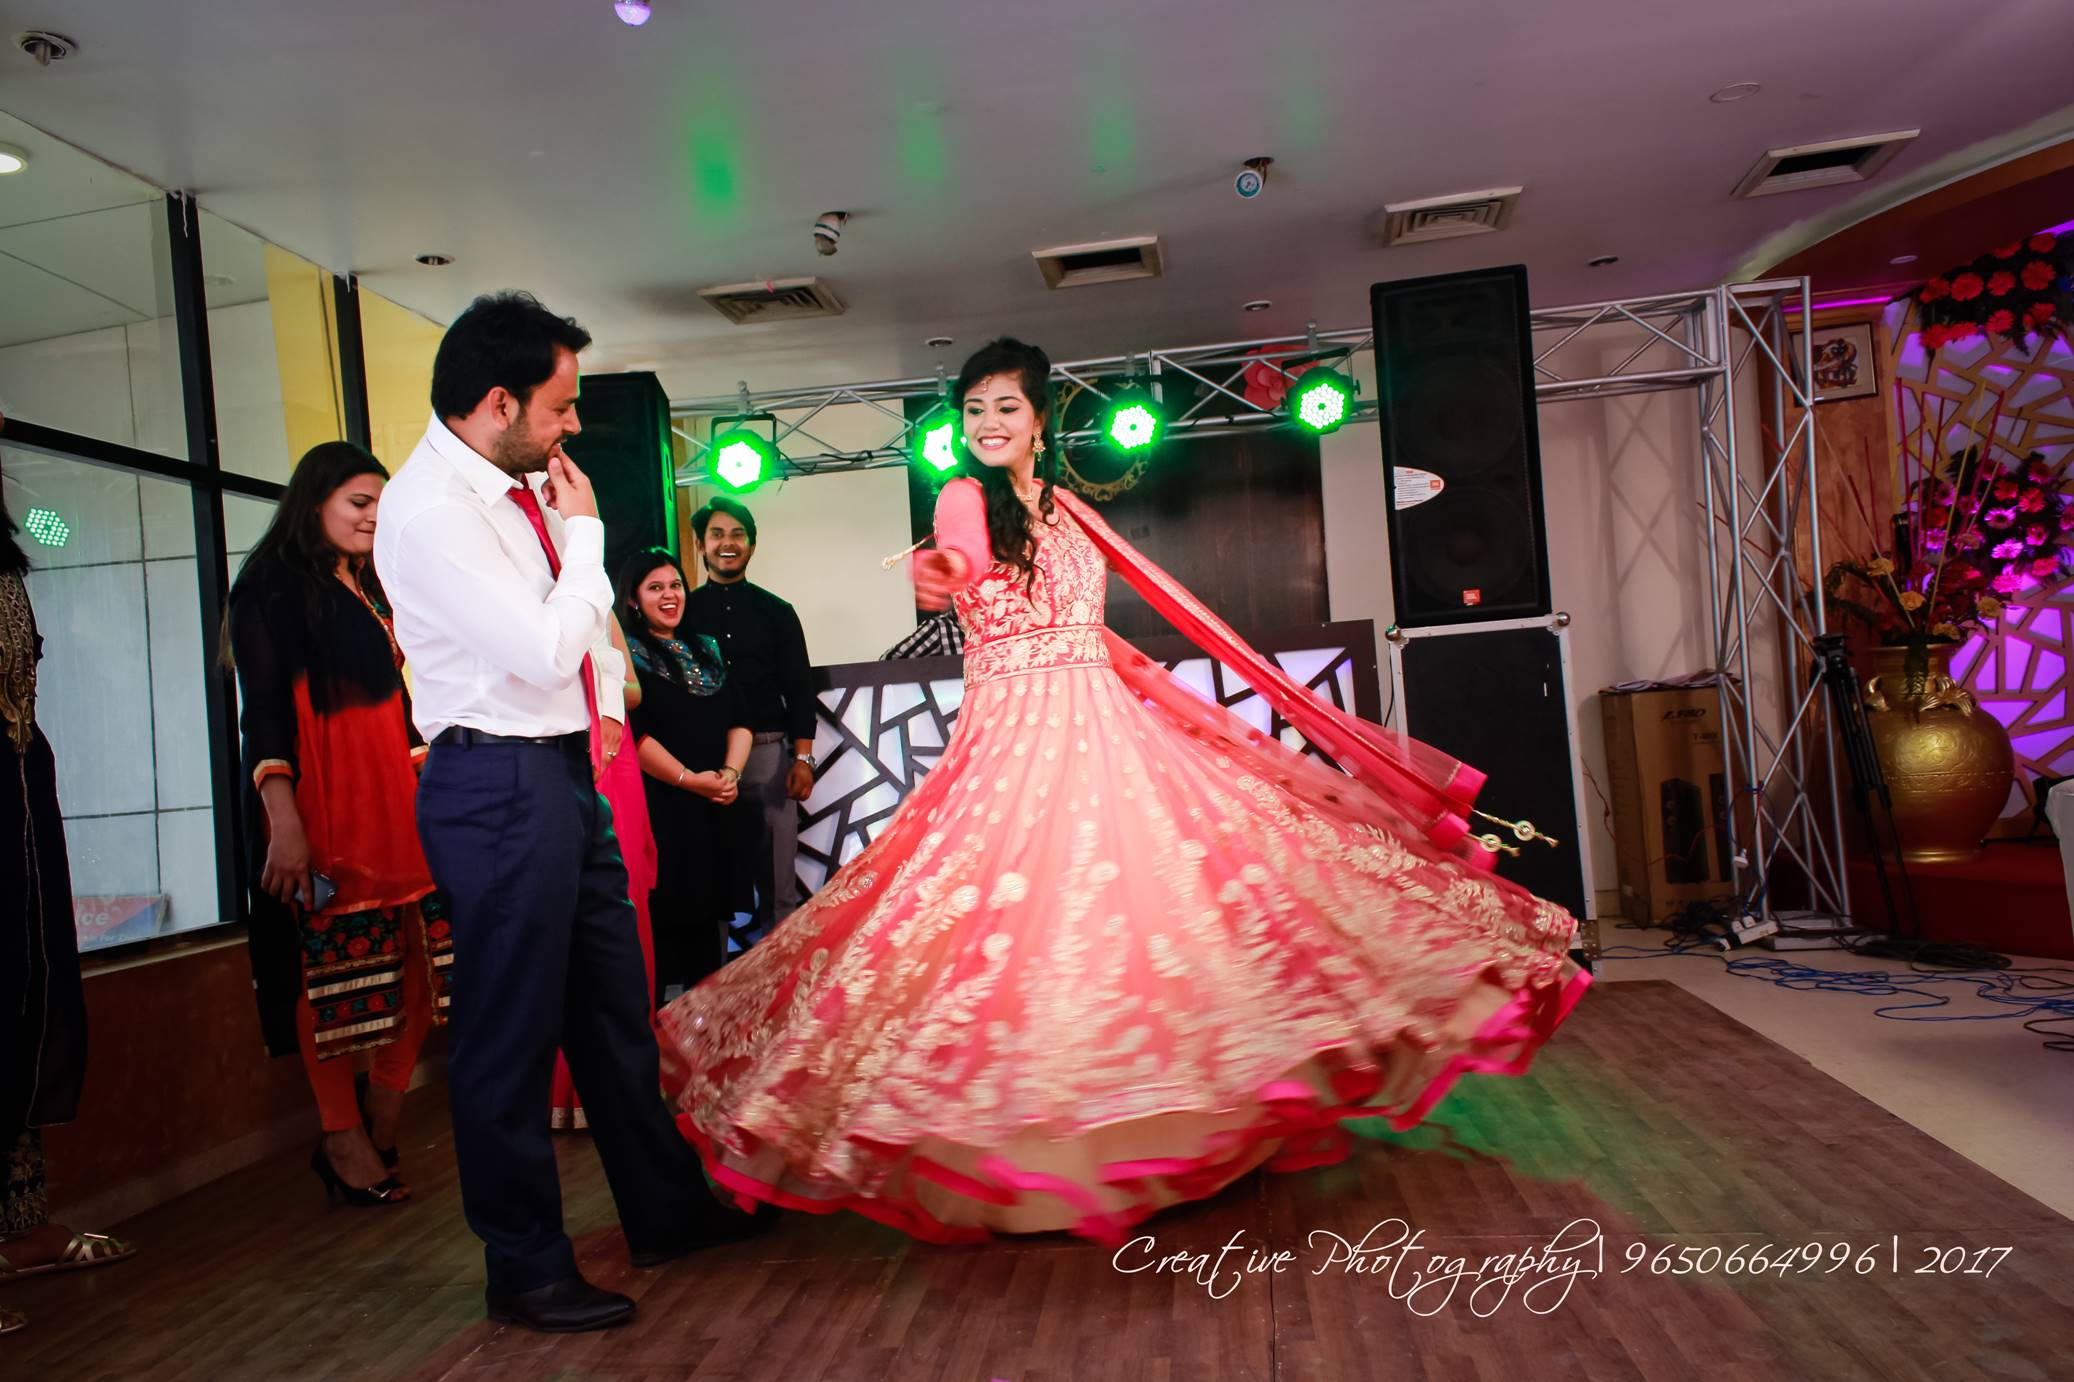 'av creative photography', 'best wedding photography in Delhi NCR', 'Book your shoot with us', 'contact us at 9650664996'